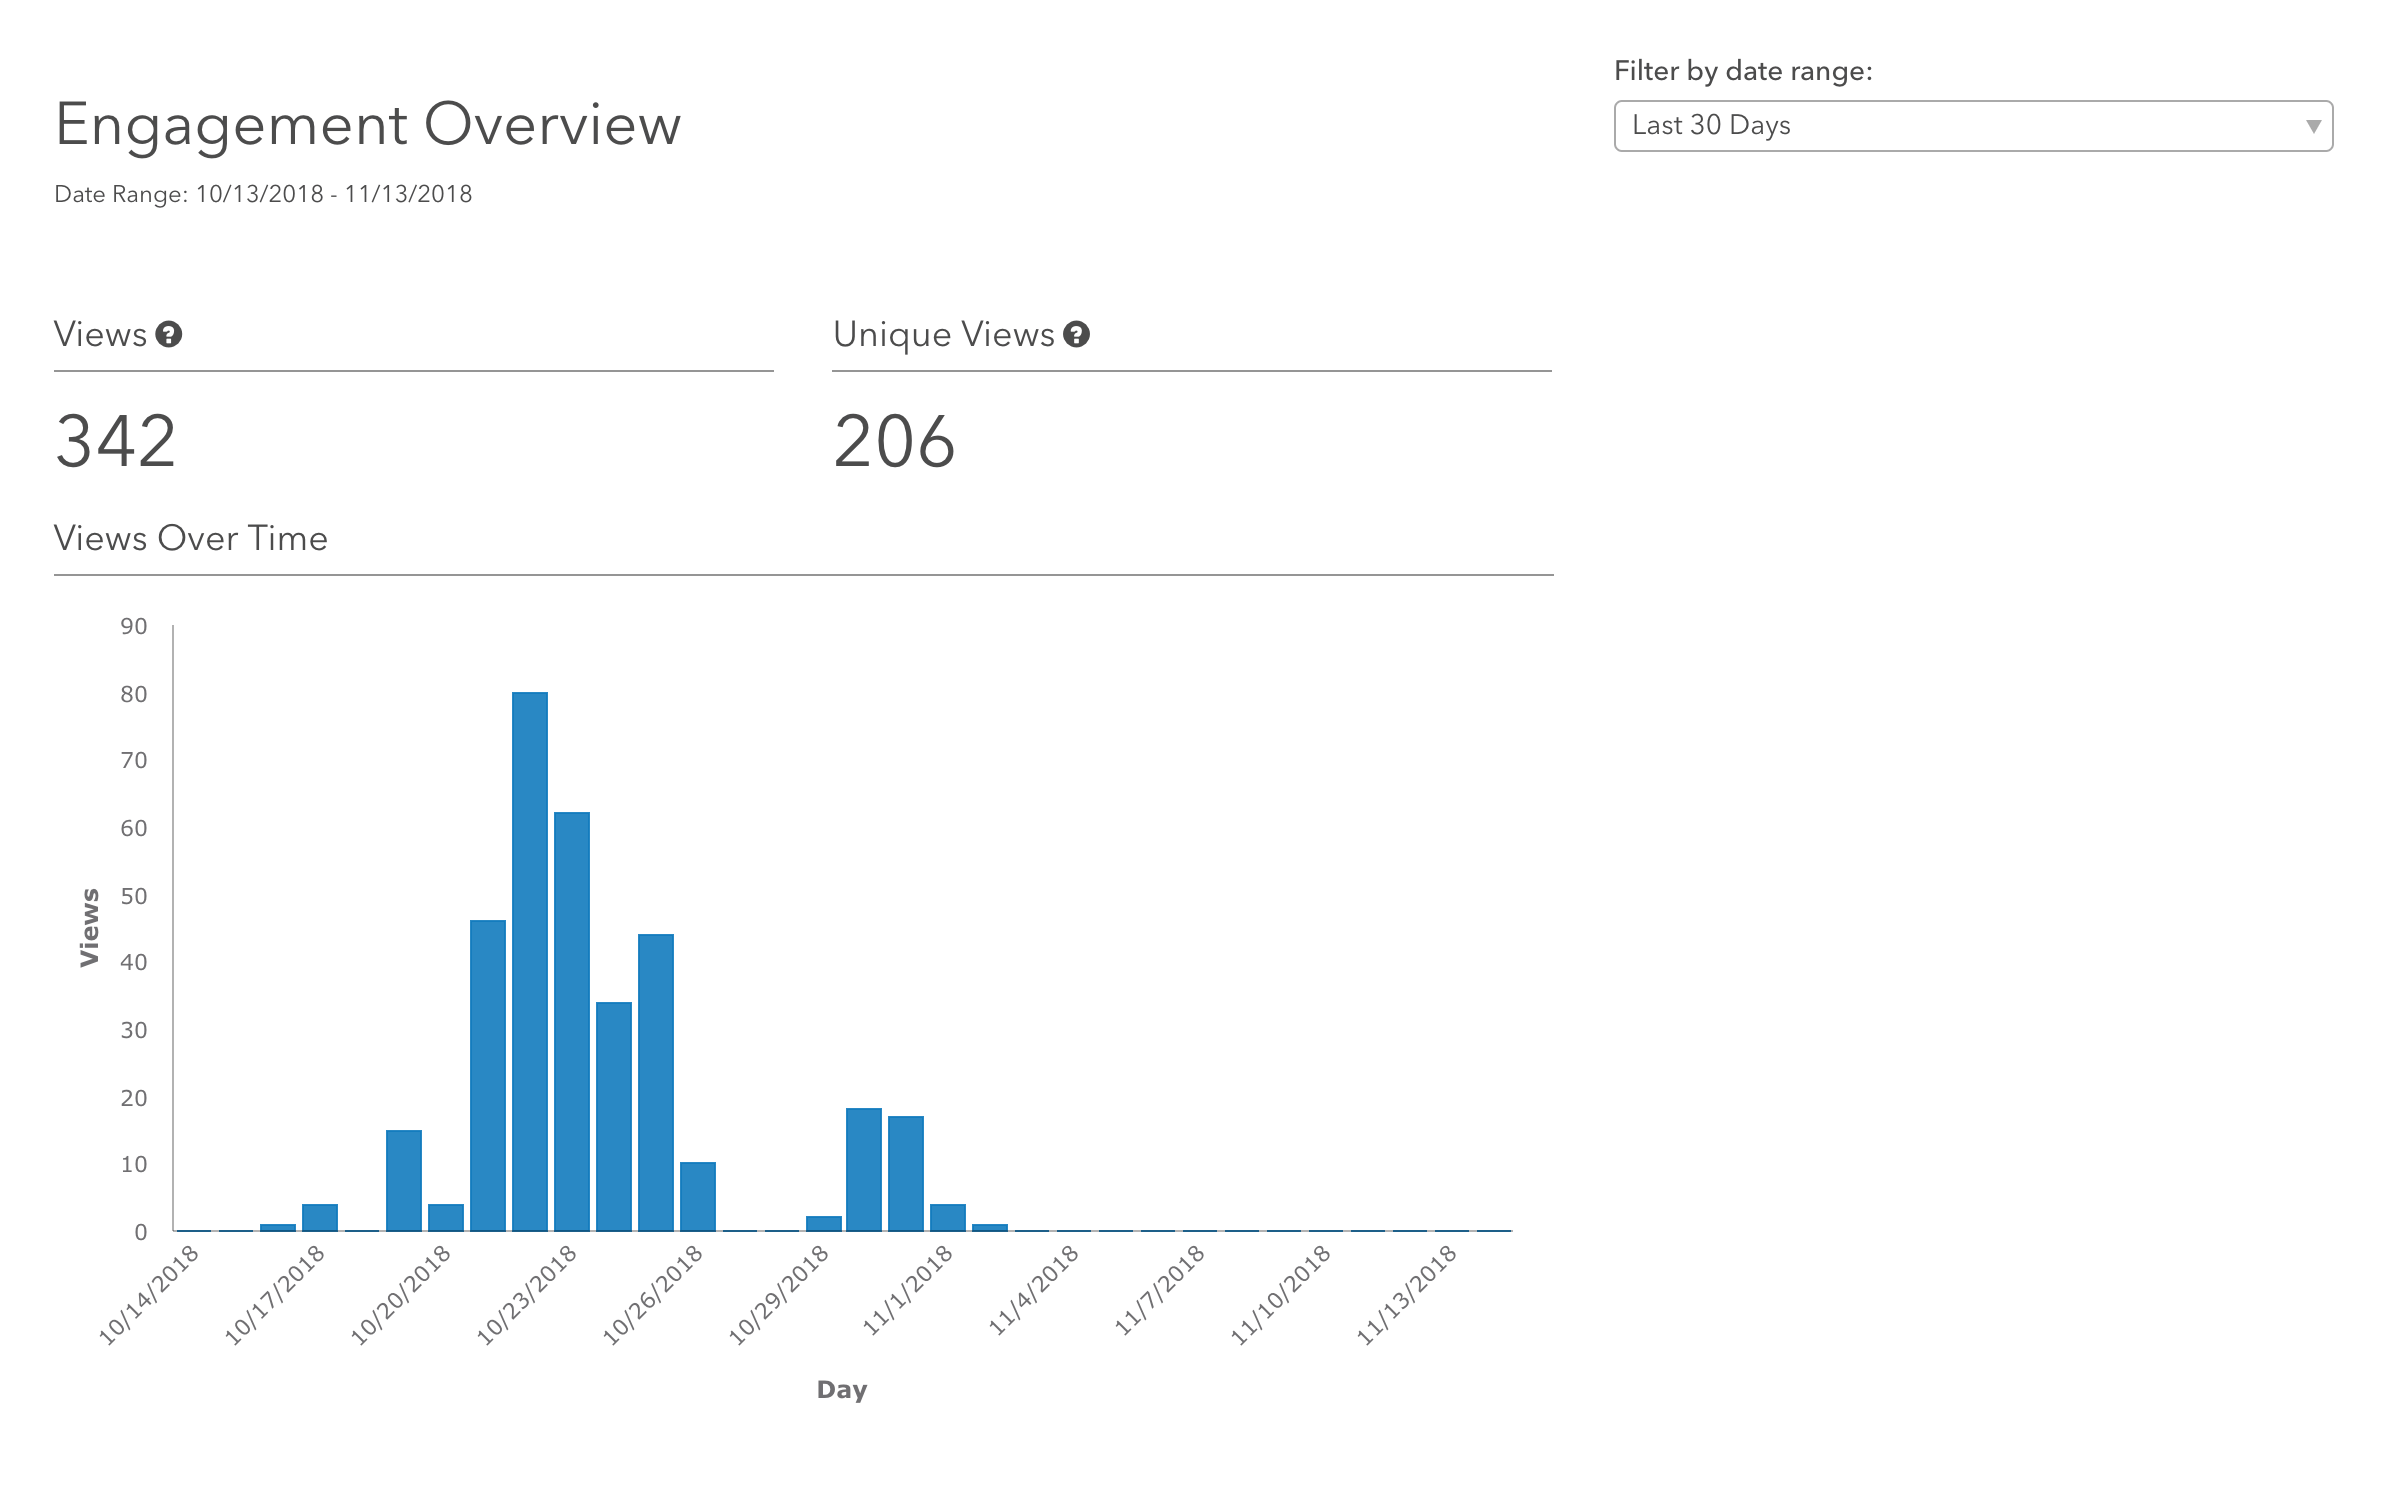 The Engagement Overview display a count of views and unique views across the top of the page and a table of views over time. In this case, it's showing views over the last 30 days.